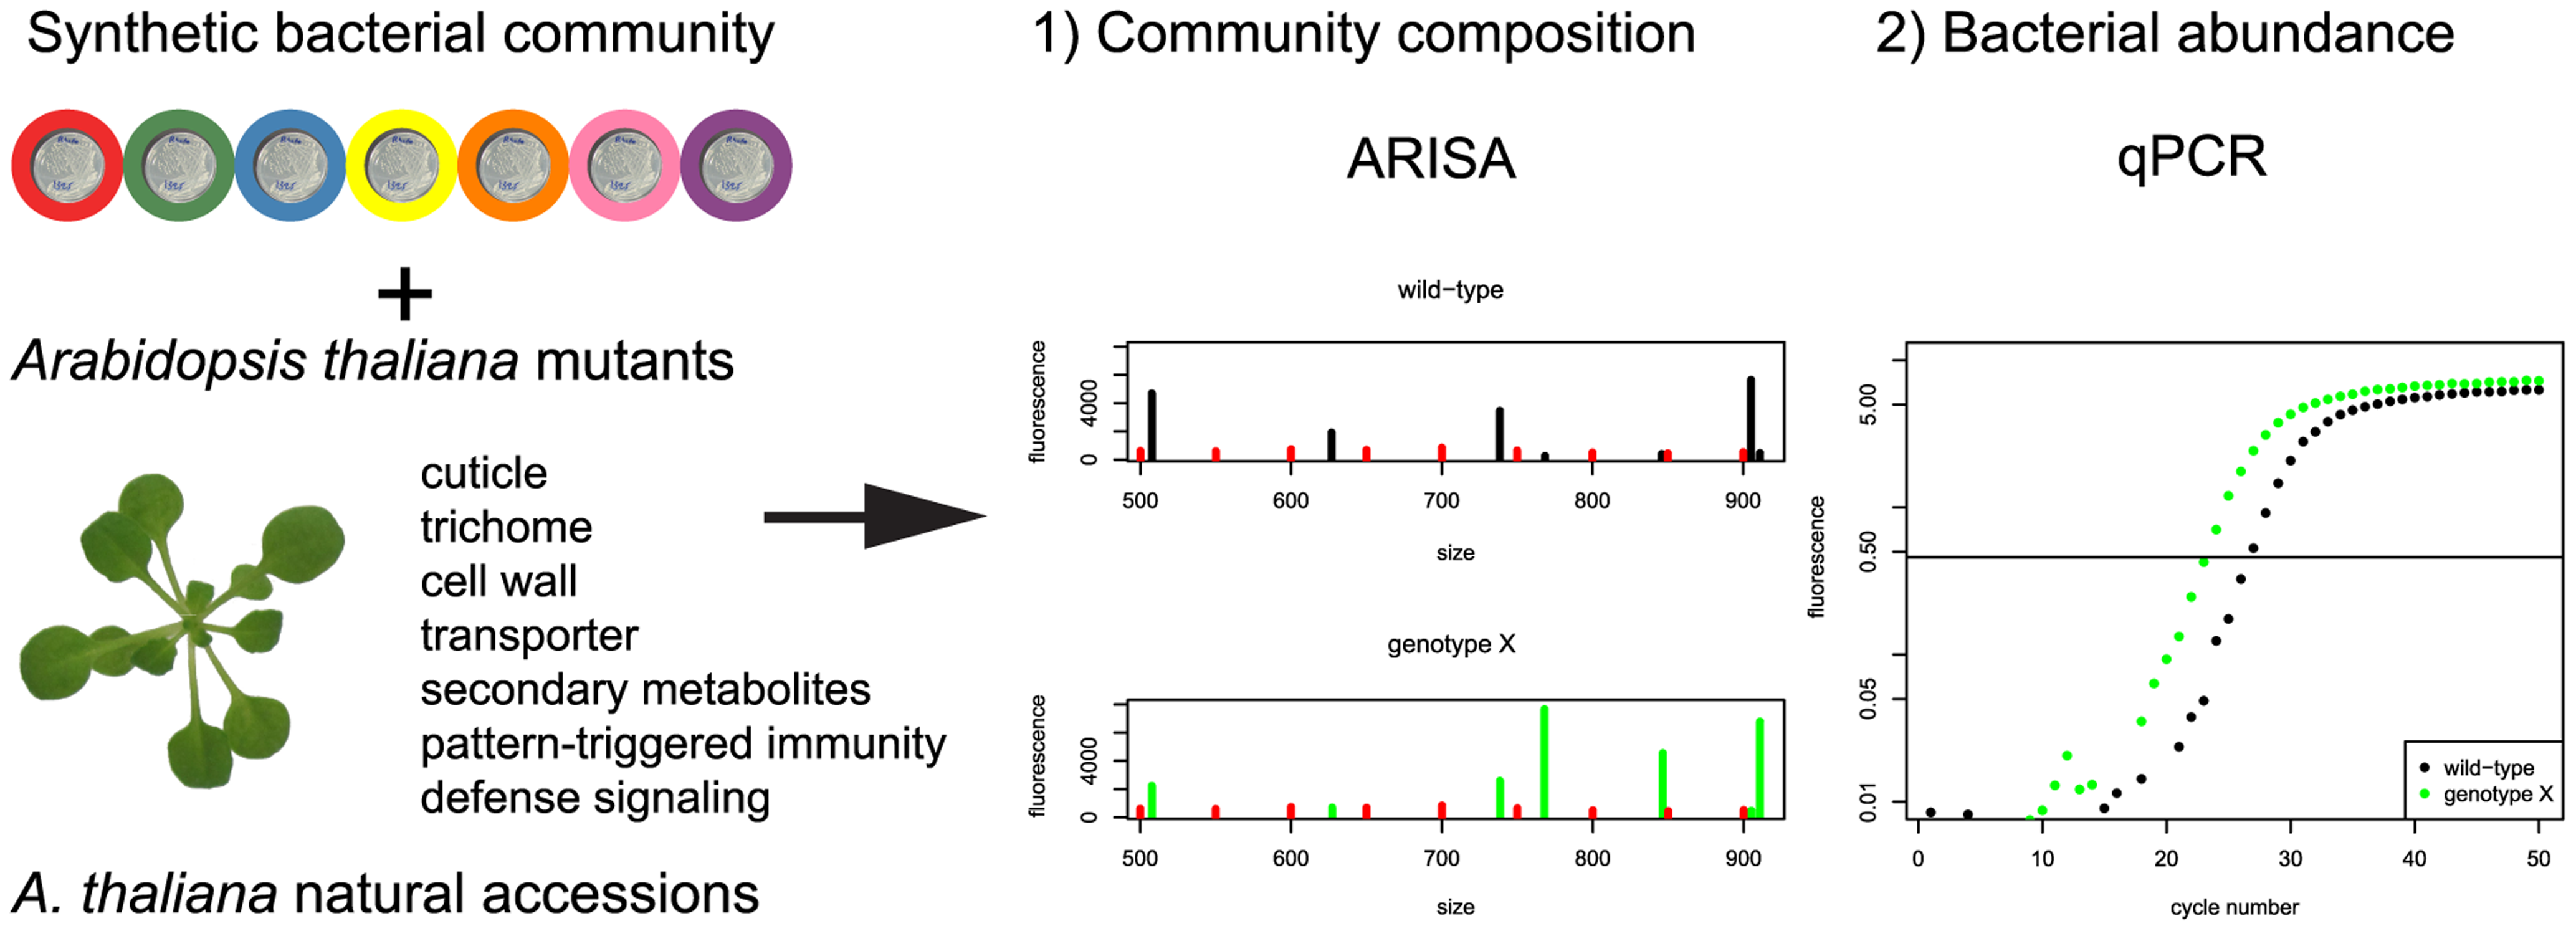 Experimental strategy to identify the plant genes responsible for changes in community composition and/or total bacterial abundance.